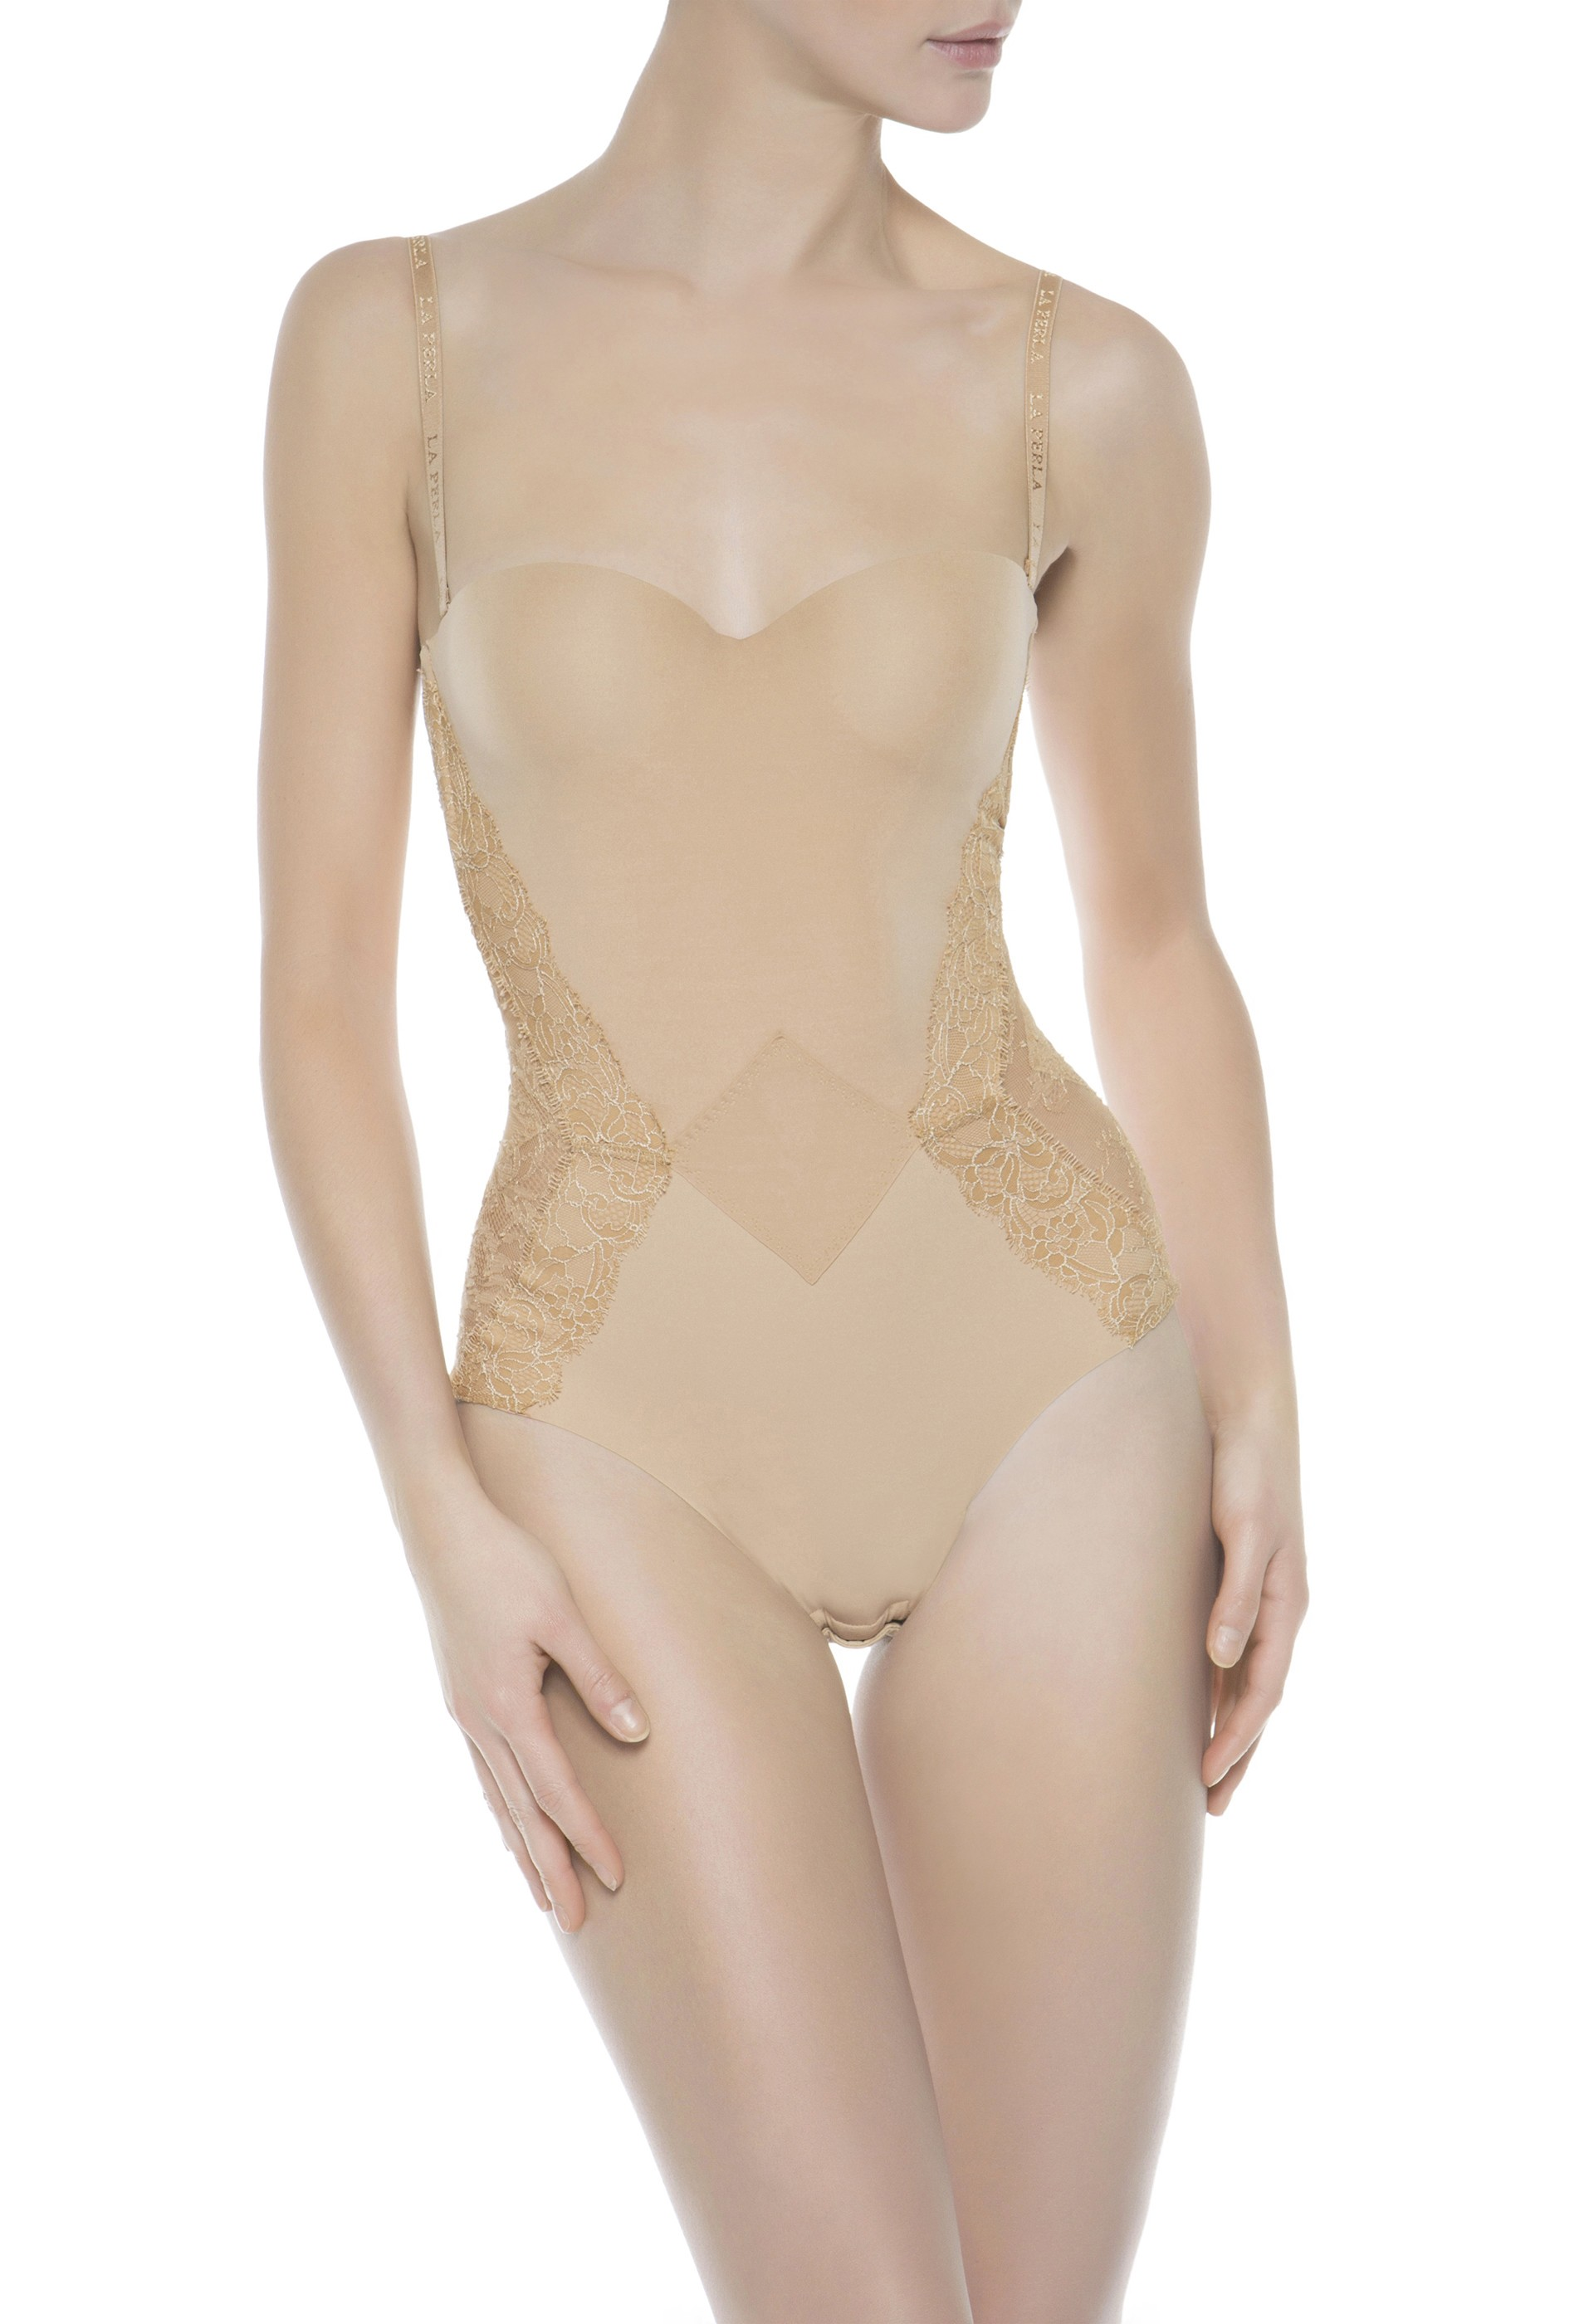 laperla bodysuits 14-17